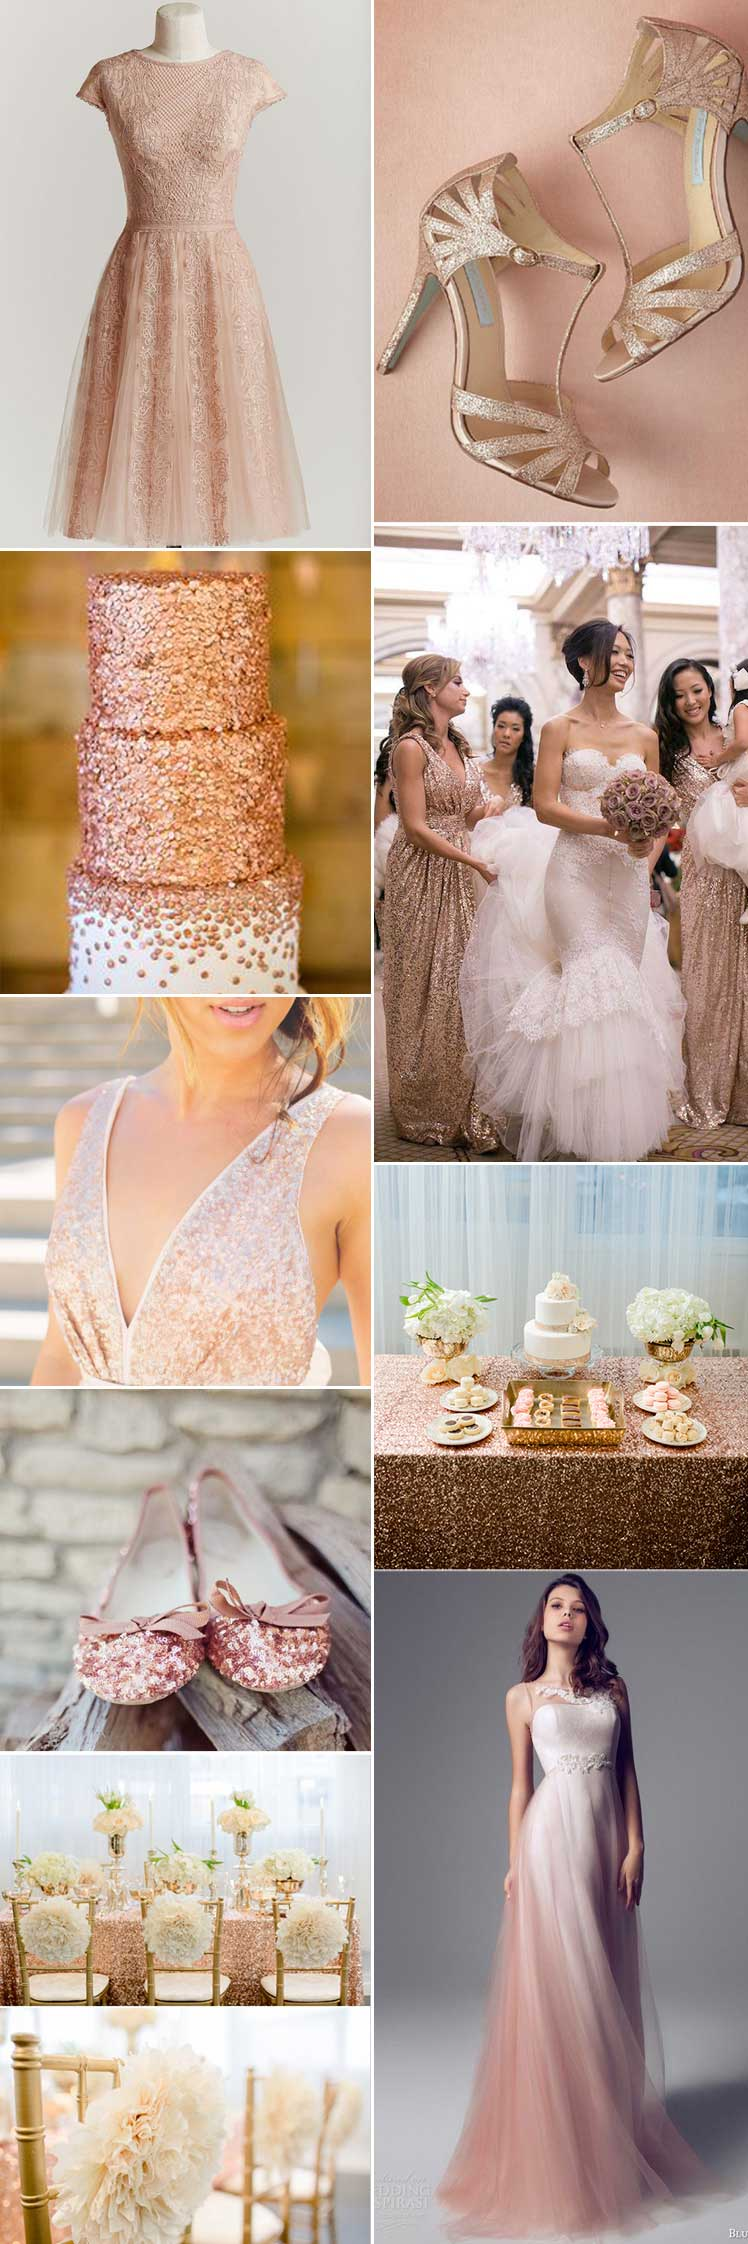 rose gold wedding ideas for a sparkly wedding theme